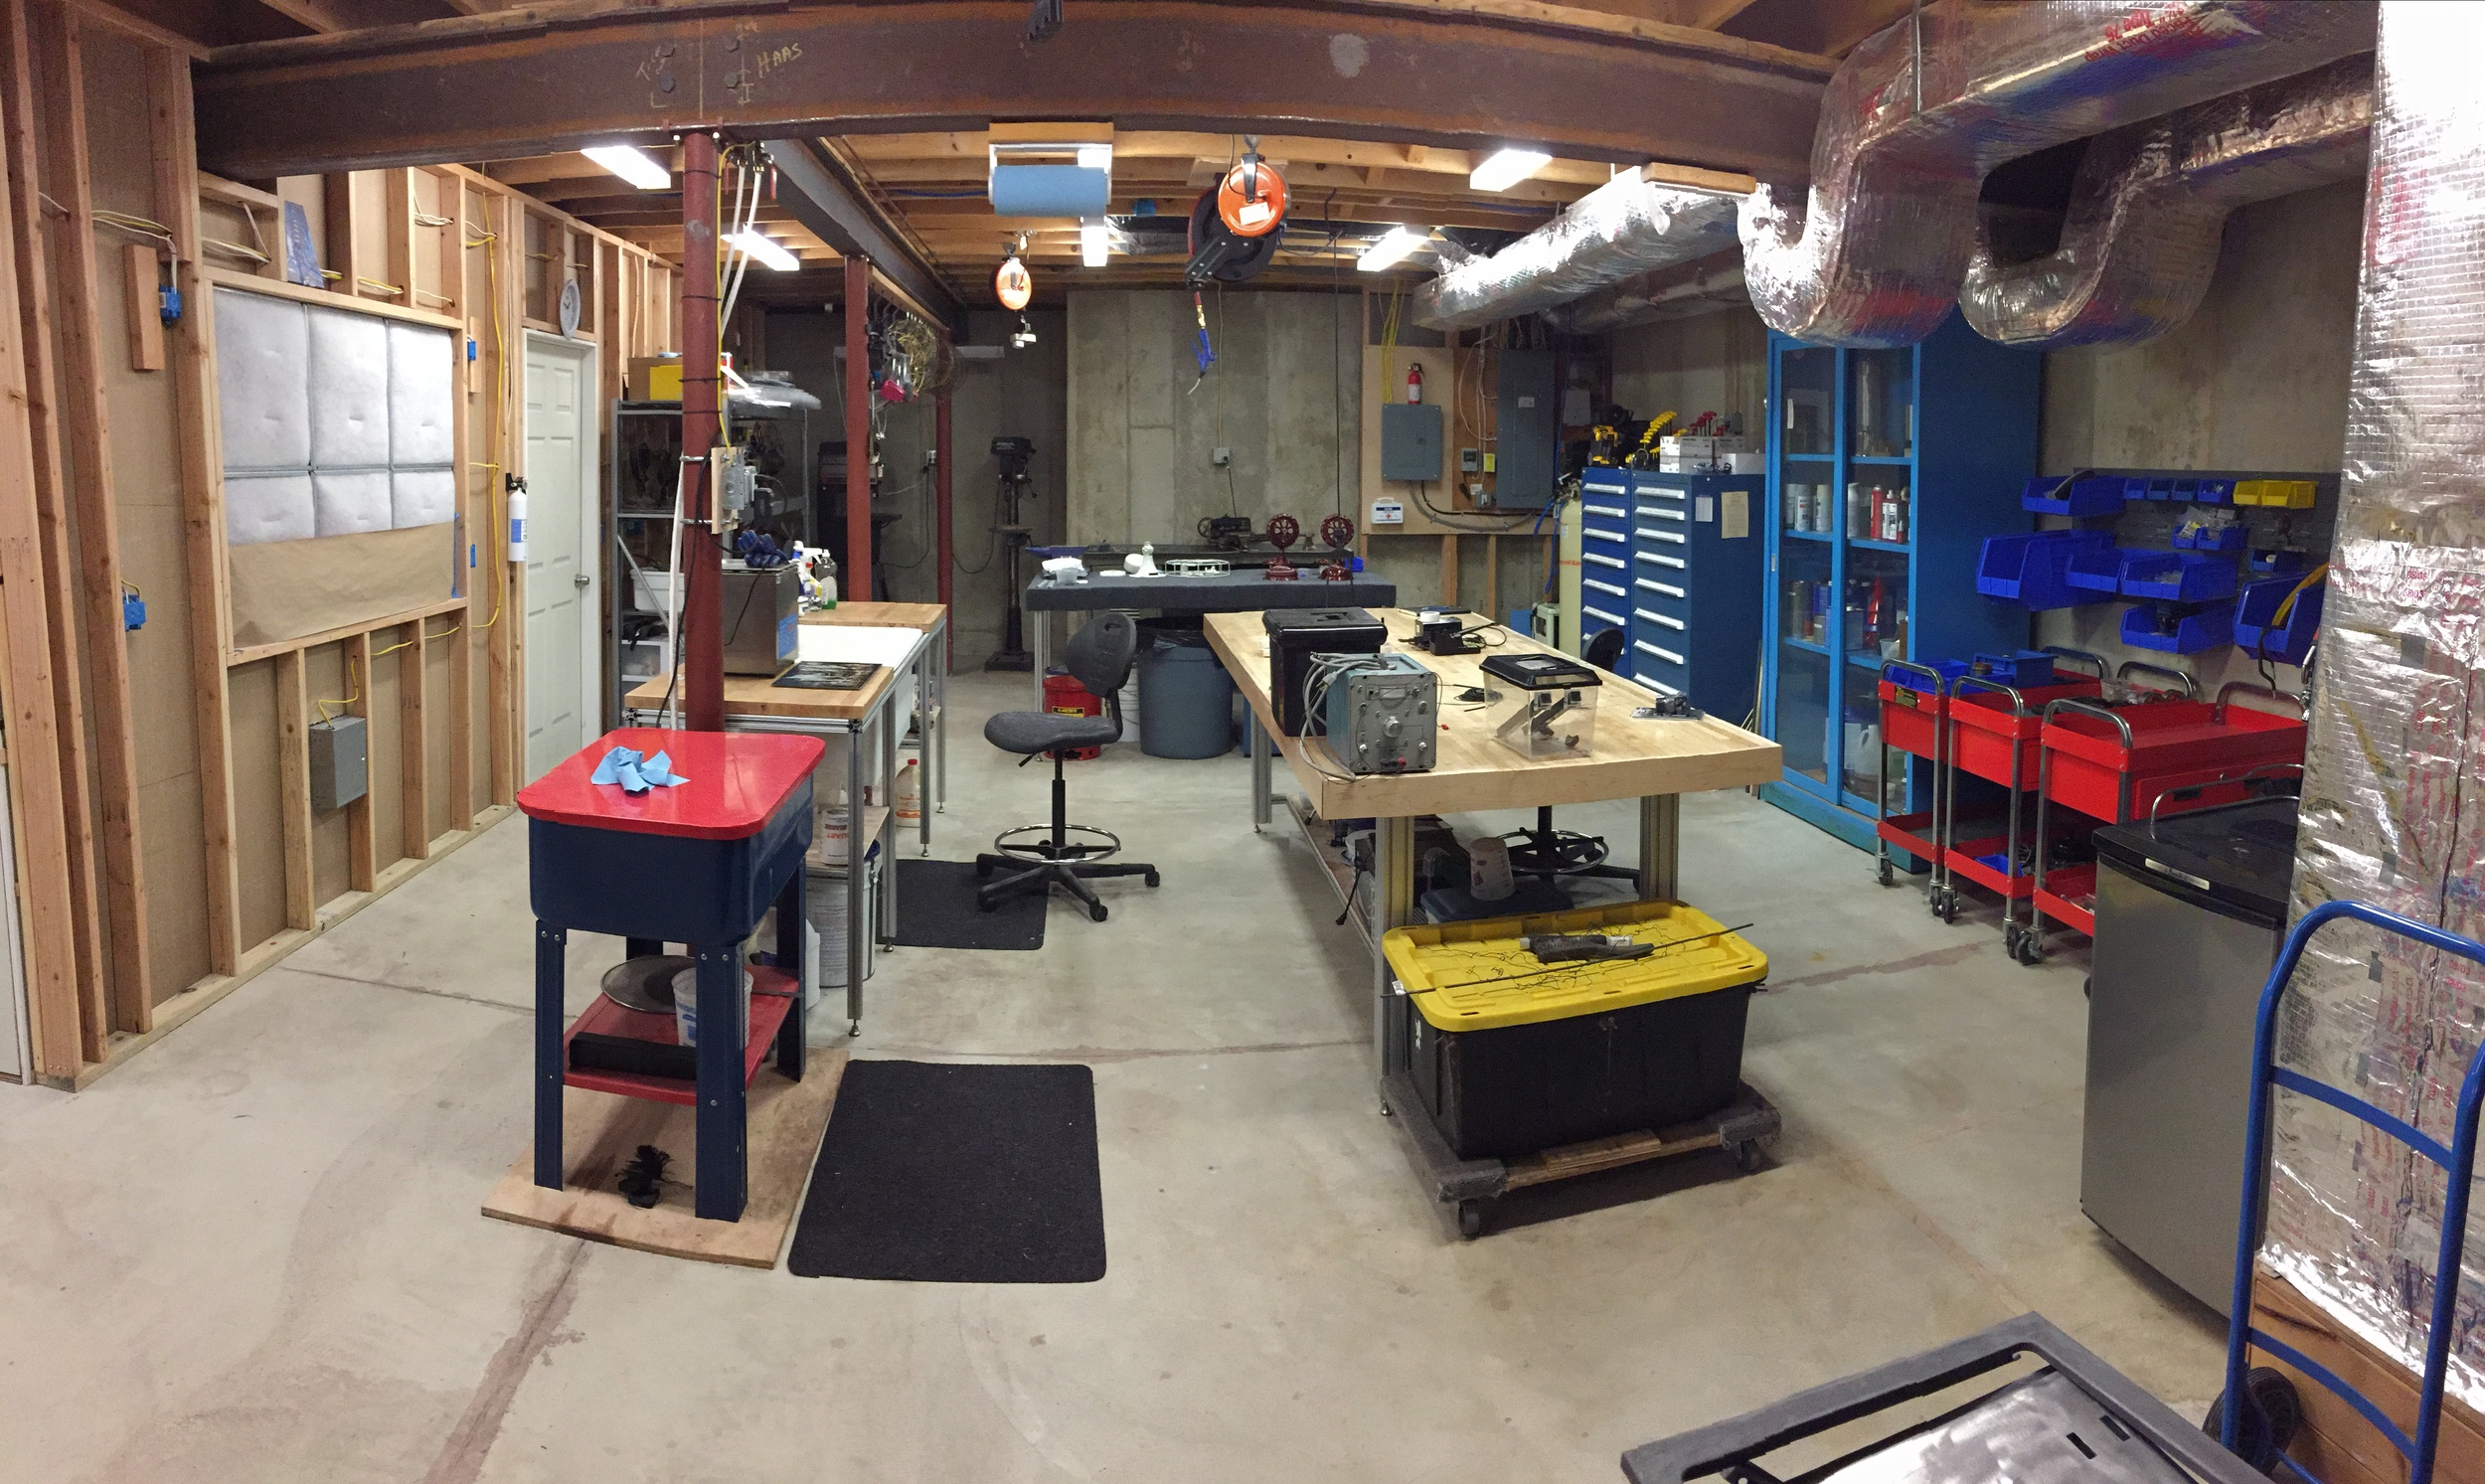 A general shot of the main part of the shop.